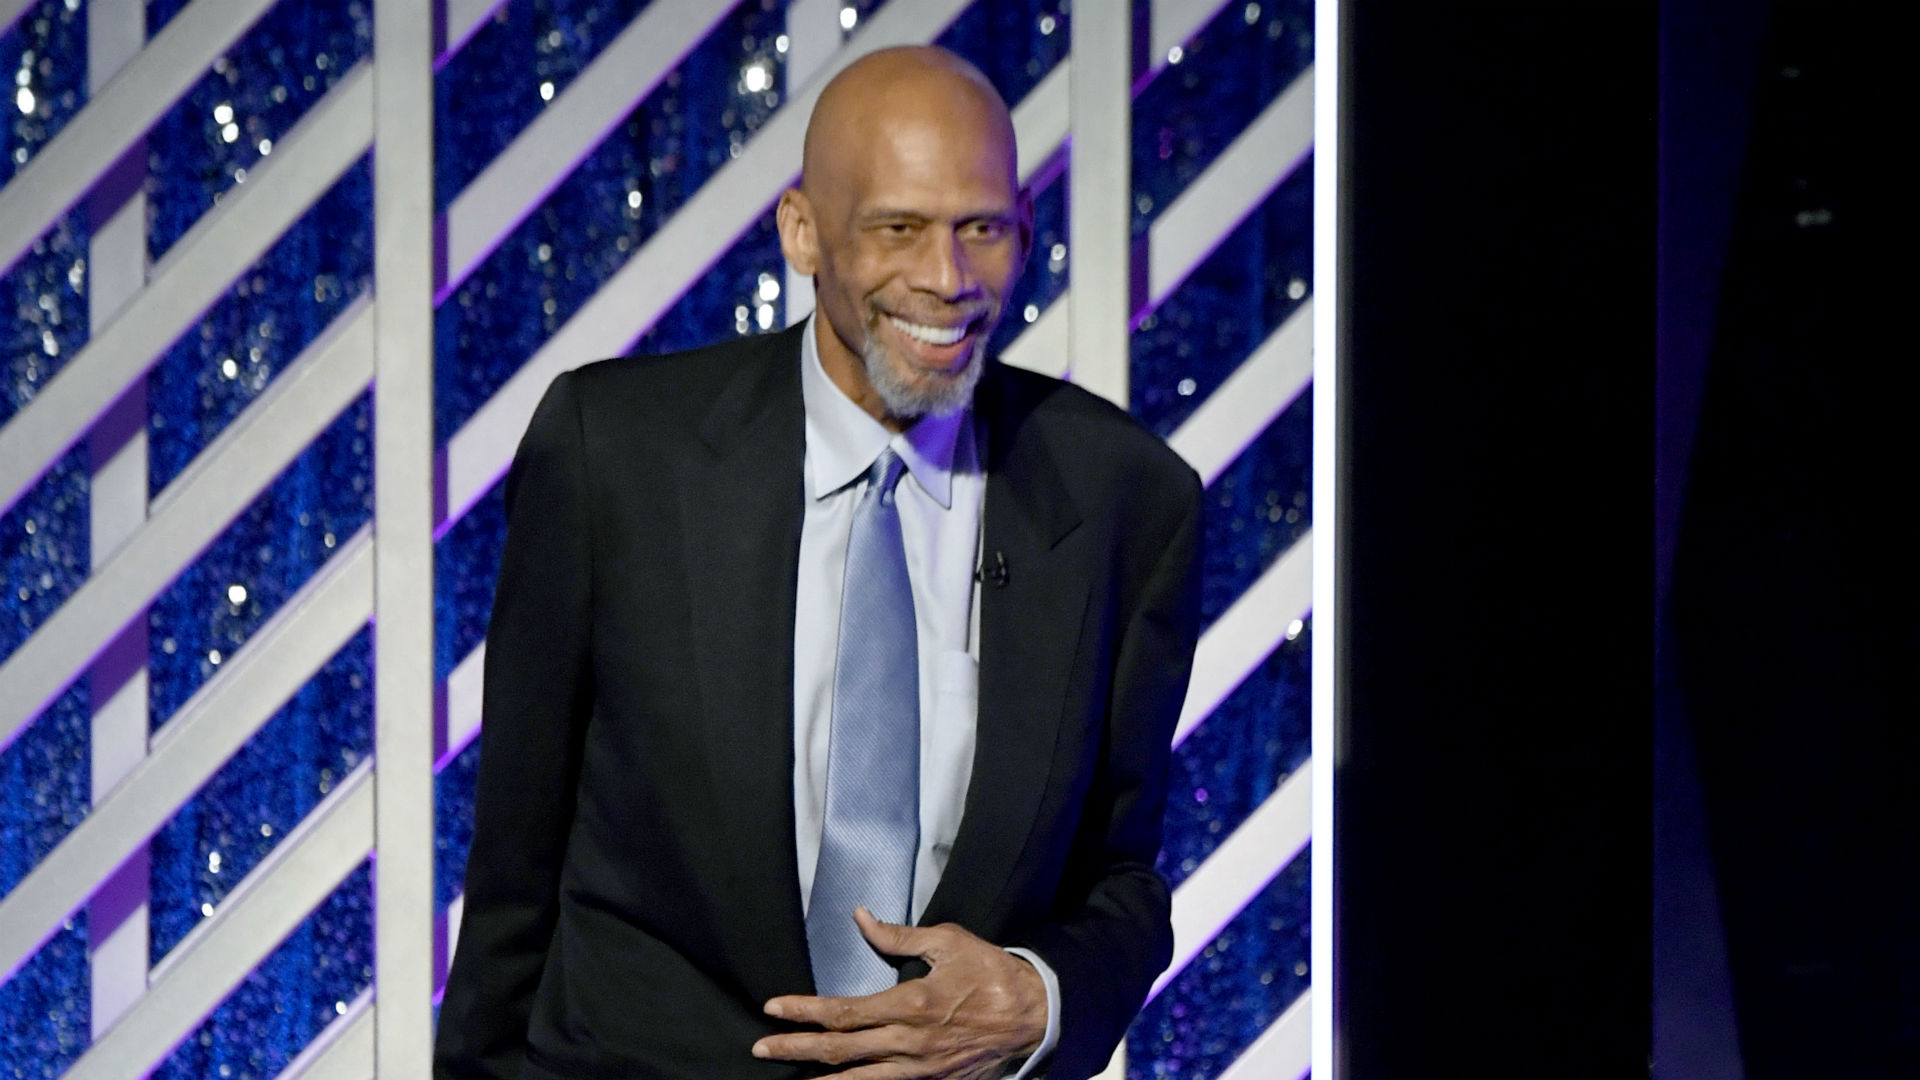 Kareem Abdul-Jabbar's memorabilia, including championship rings, sell for almost $3 million